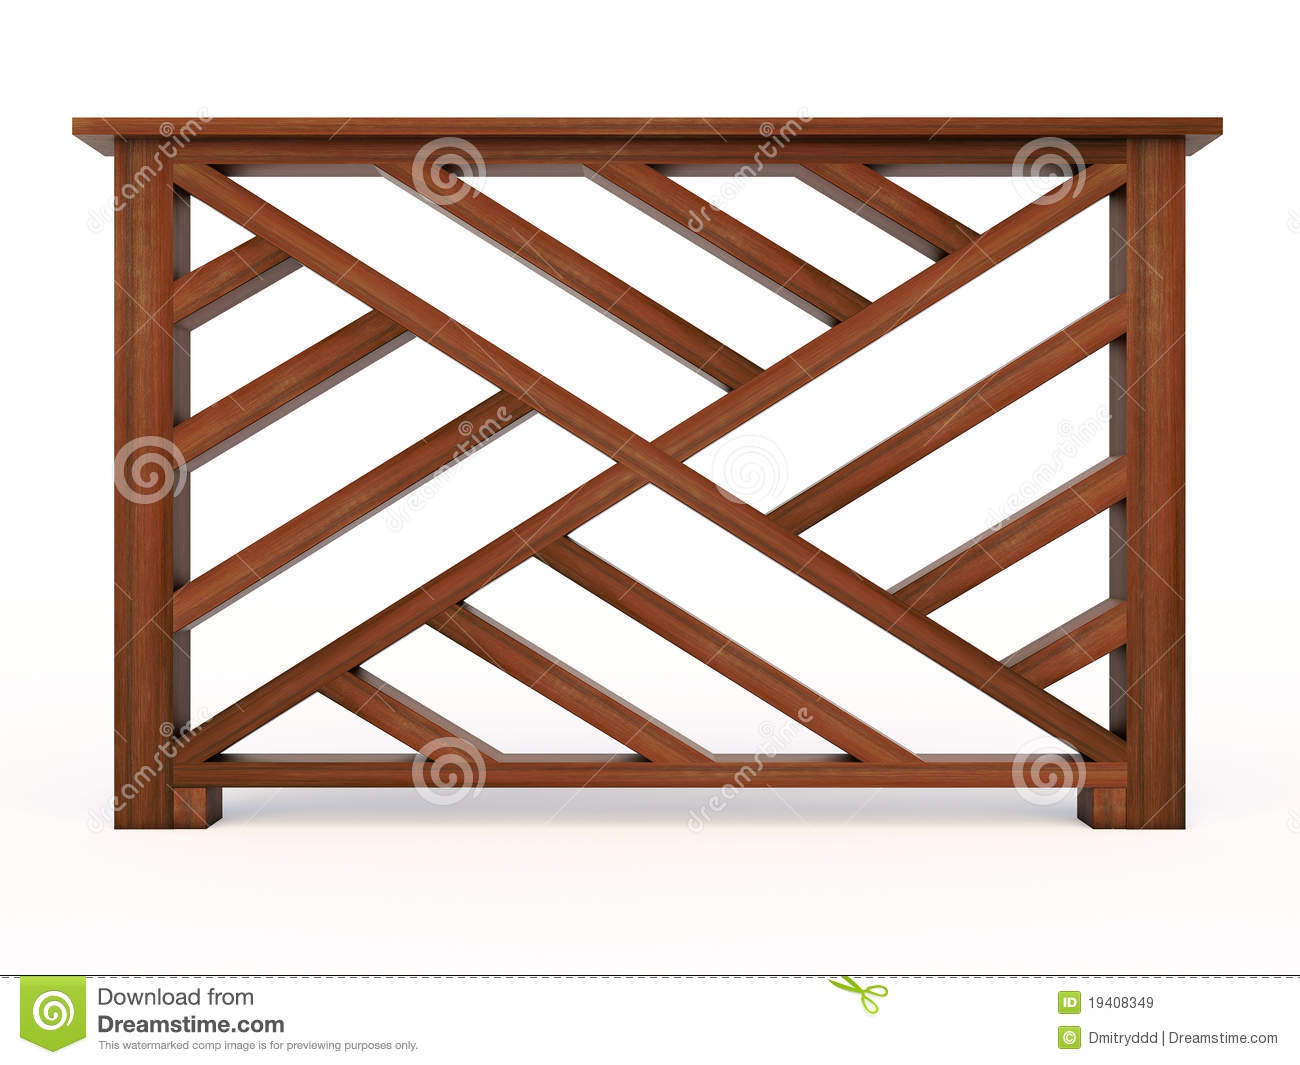 Royalty Free Stock Images Design Wooden Railing Wooden Balusters Image19408349 on handrails design ideas